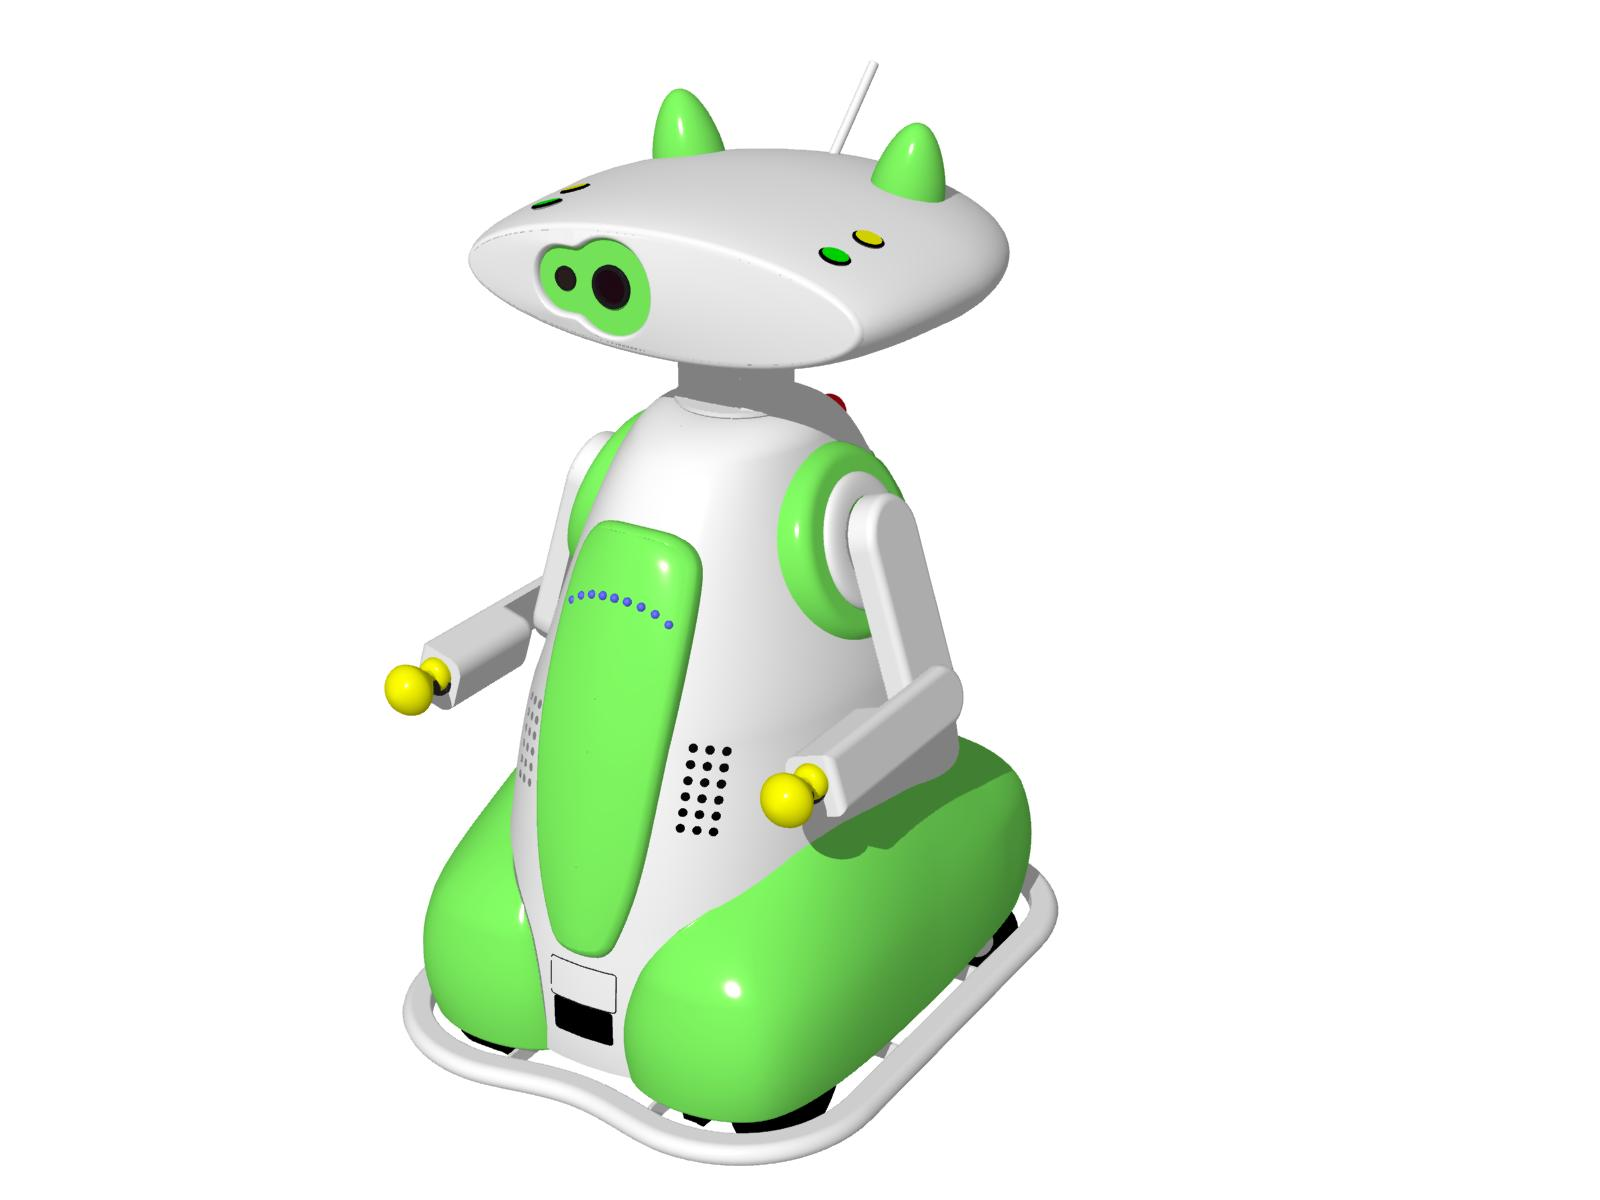 THE GUIDE ROBOTS